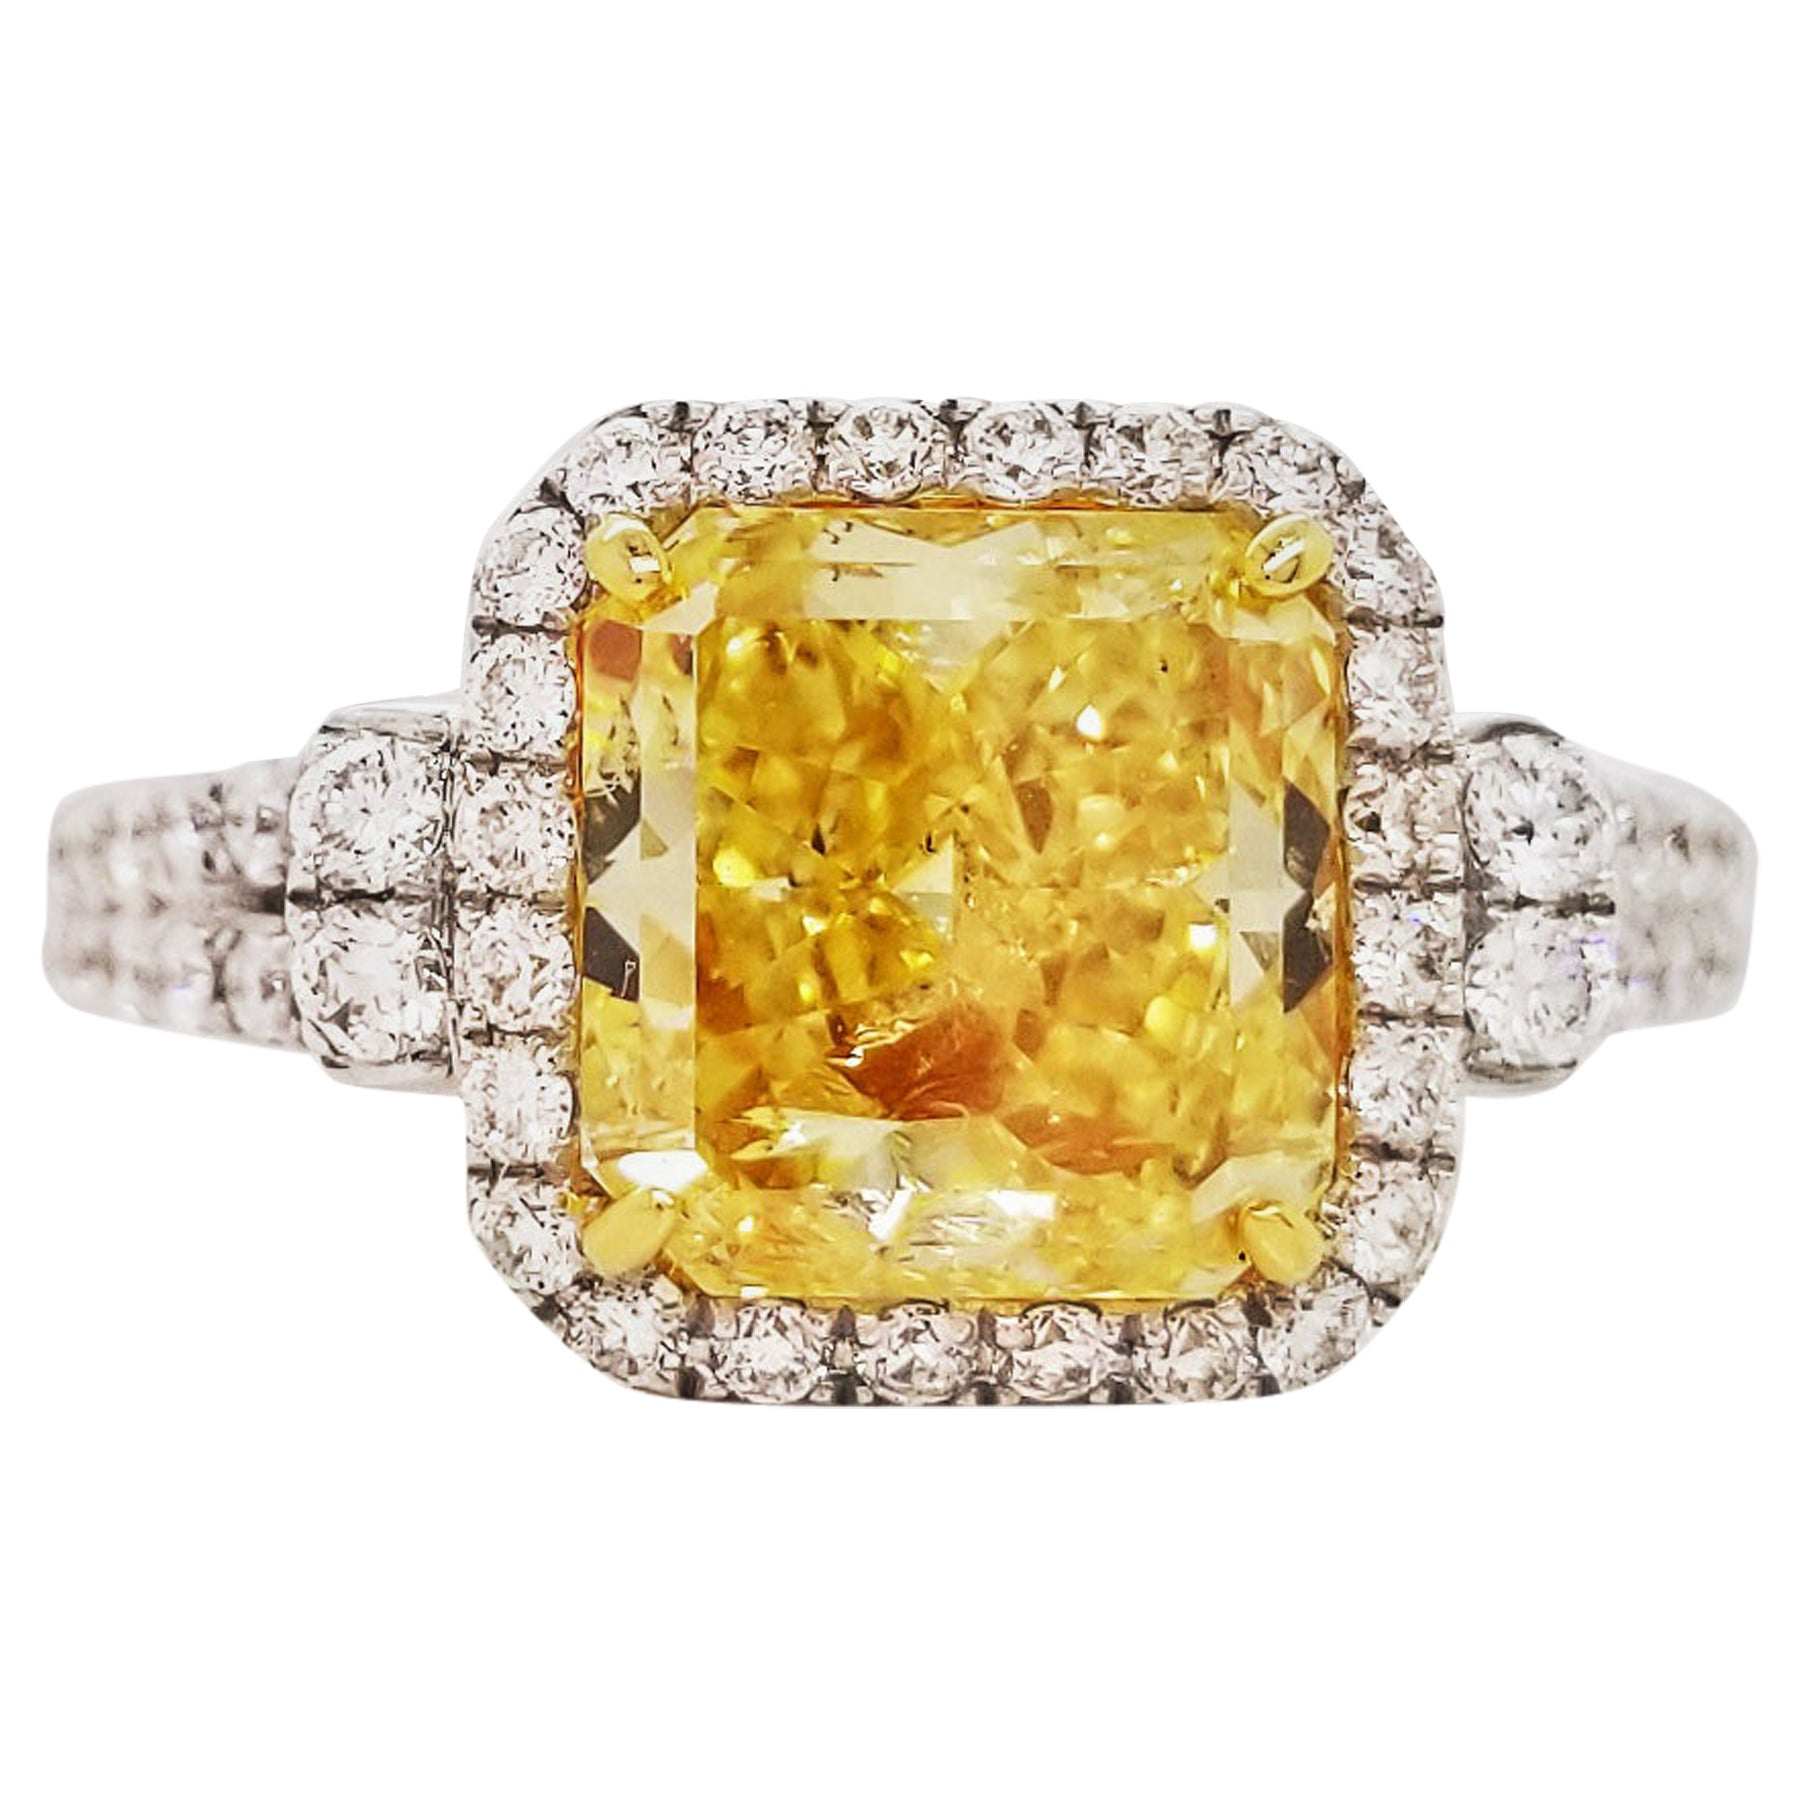 Scarselli GIA Certified 2 Carat Fancy Intense Yellow Radiant Cut Engagement Ring